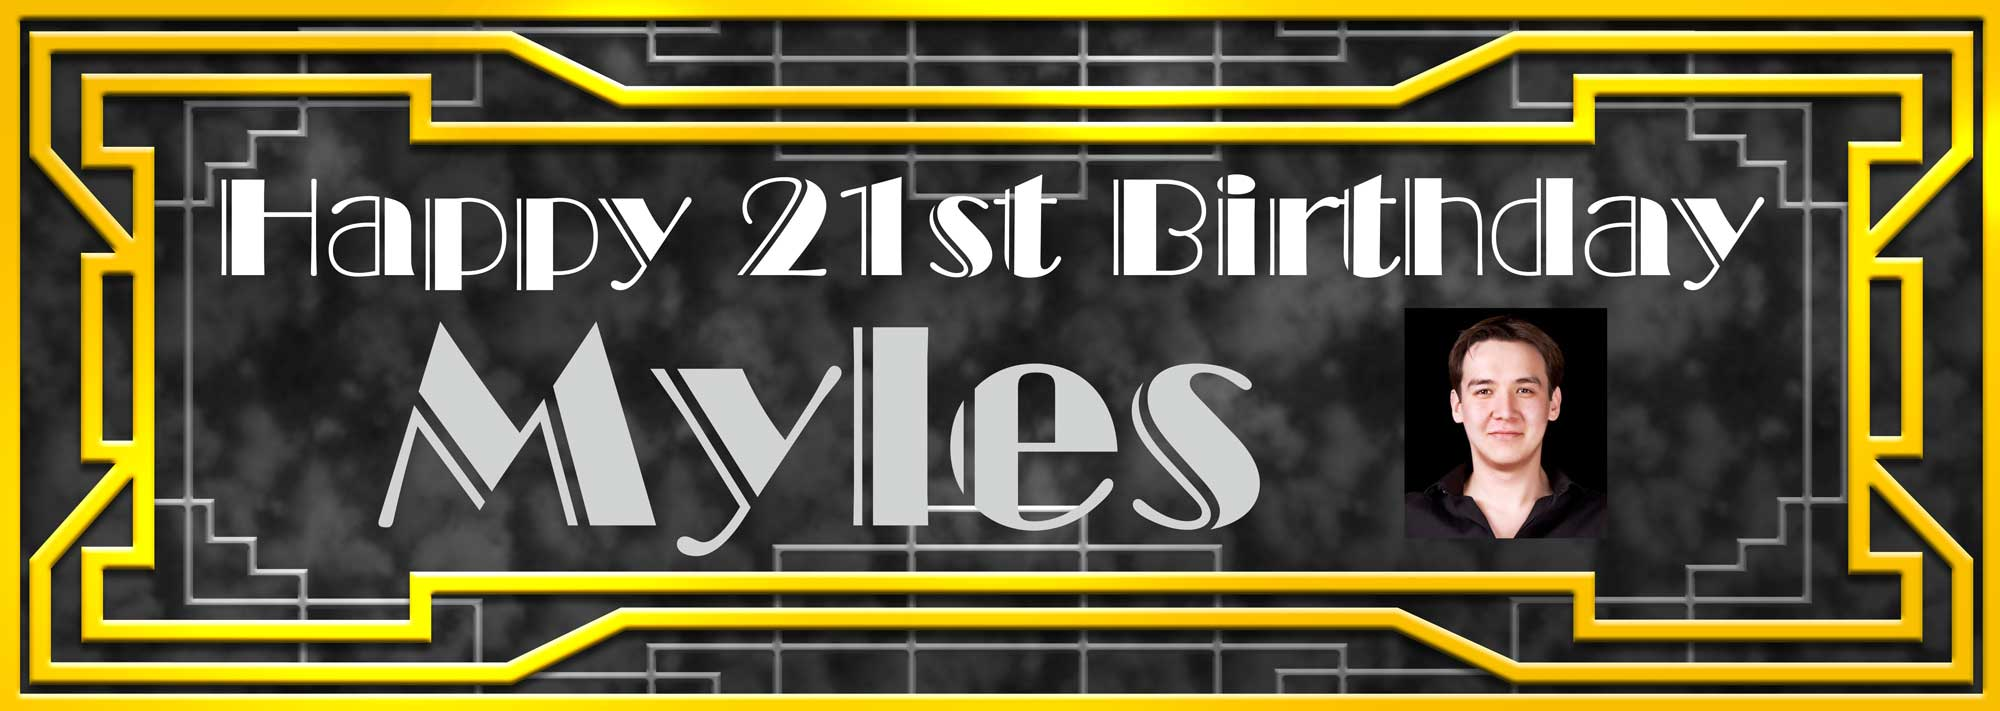 18th birthday banners personalized with photo ; Gatsby